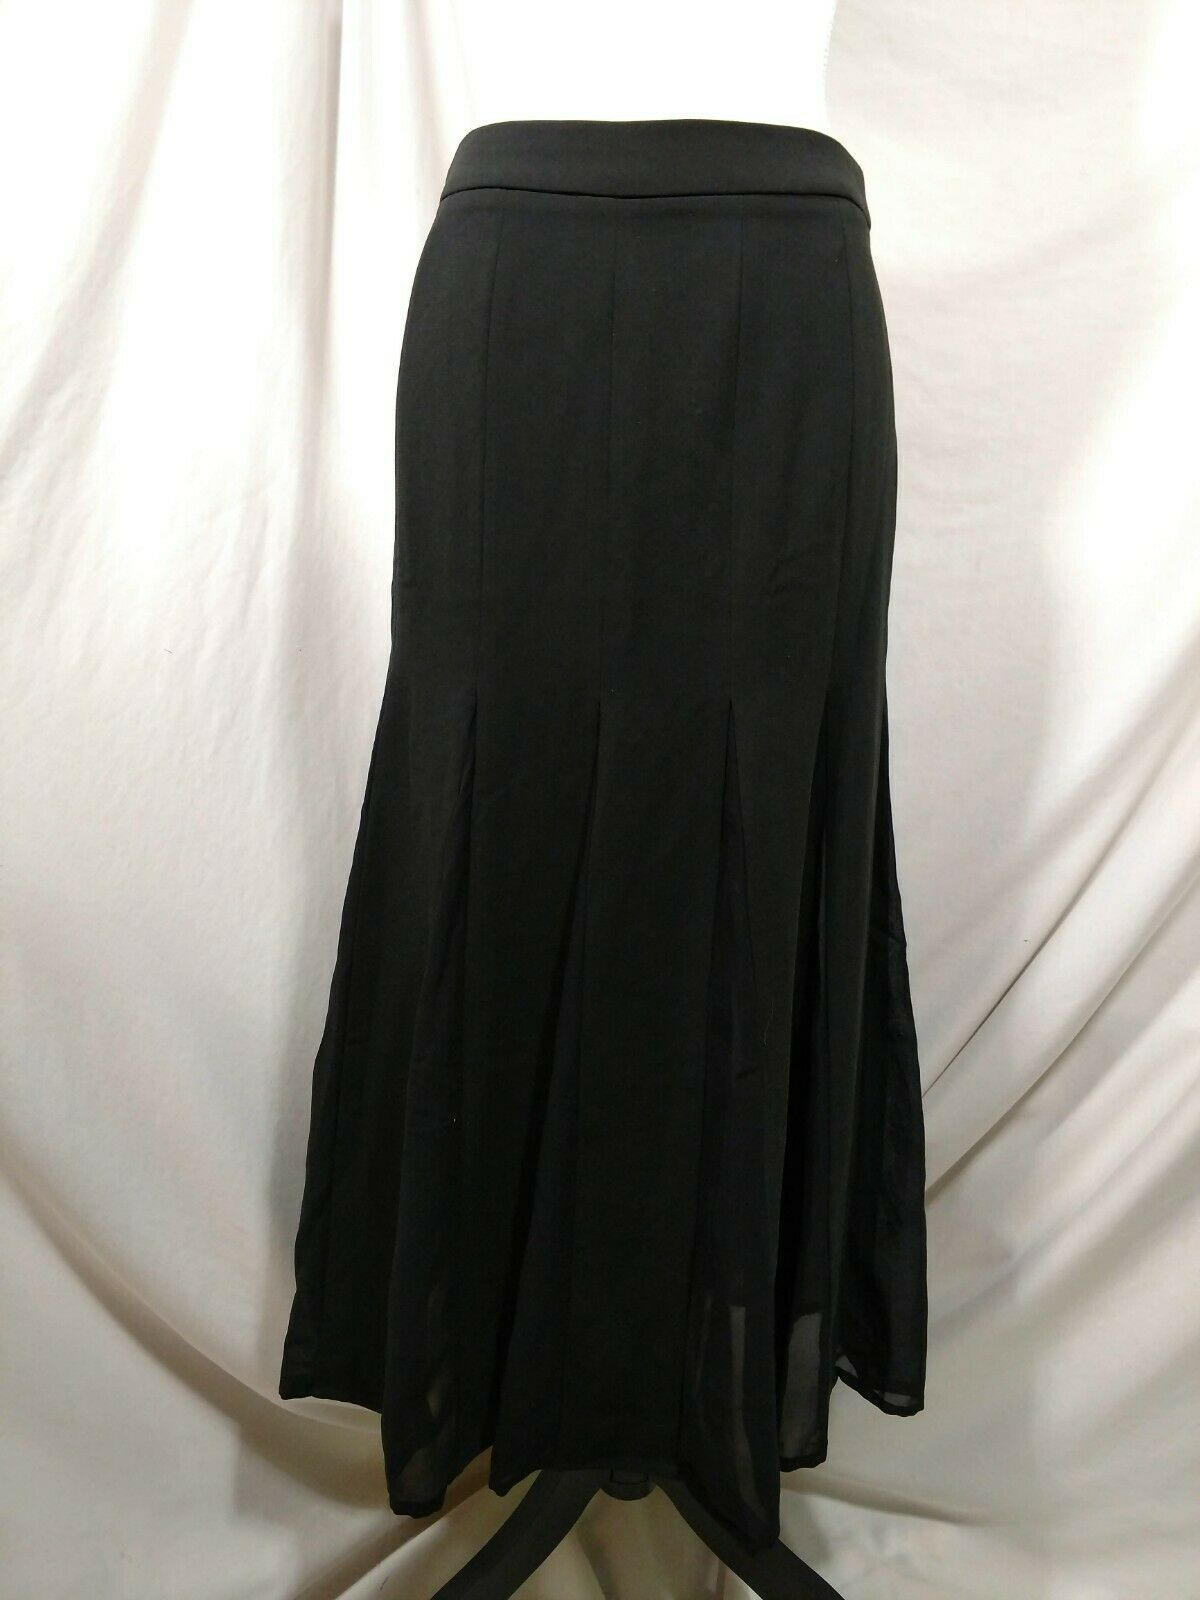 "STYLEWE Black Skirt Medium ""XL"" Flowy Fit & Flare SHANGMAN 6 8 Maxi Long Modest image 2"